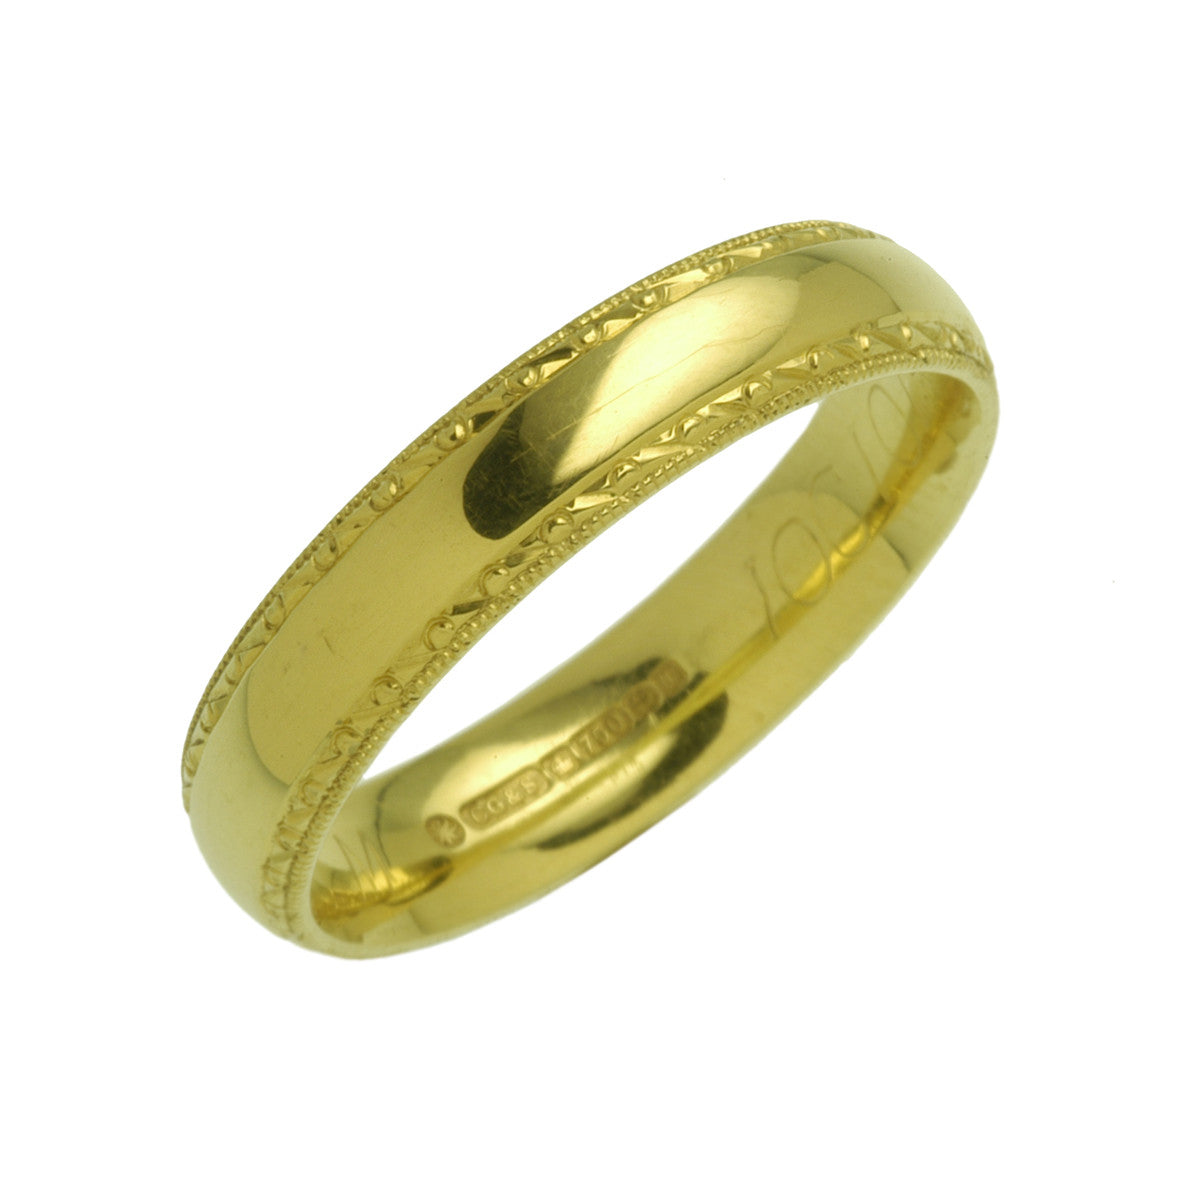 Charles Green Pattern Engraved Wedding Ring